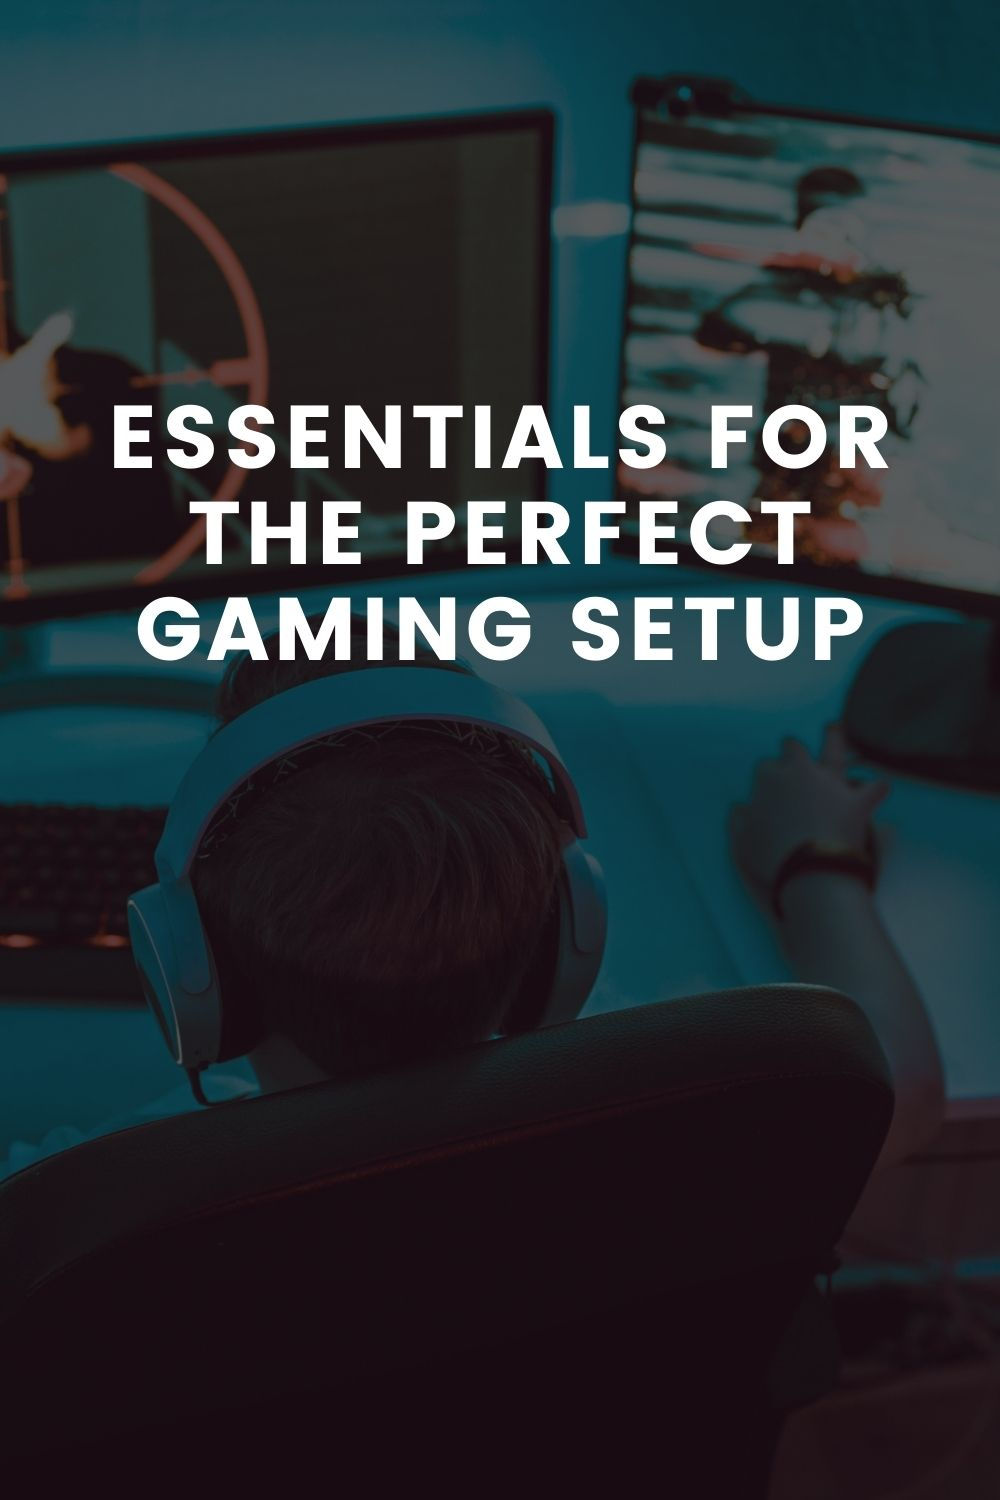 Essentials For The Perfect Gaming Setup